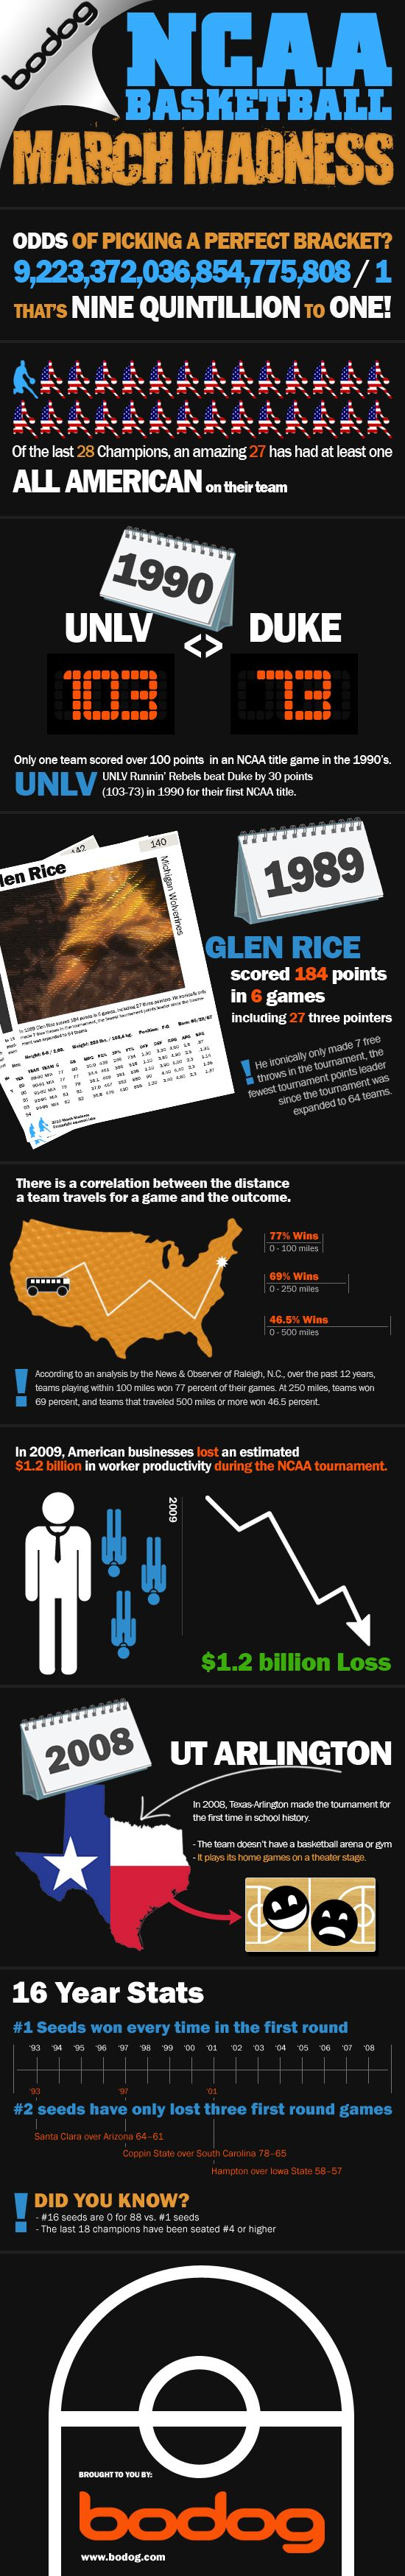 NCAA Basketball March Madness - Infographic via designinfographics.com